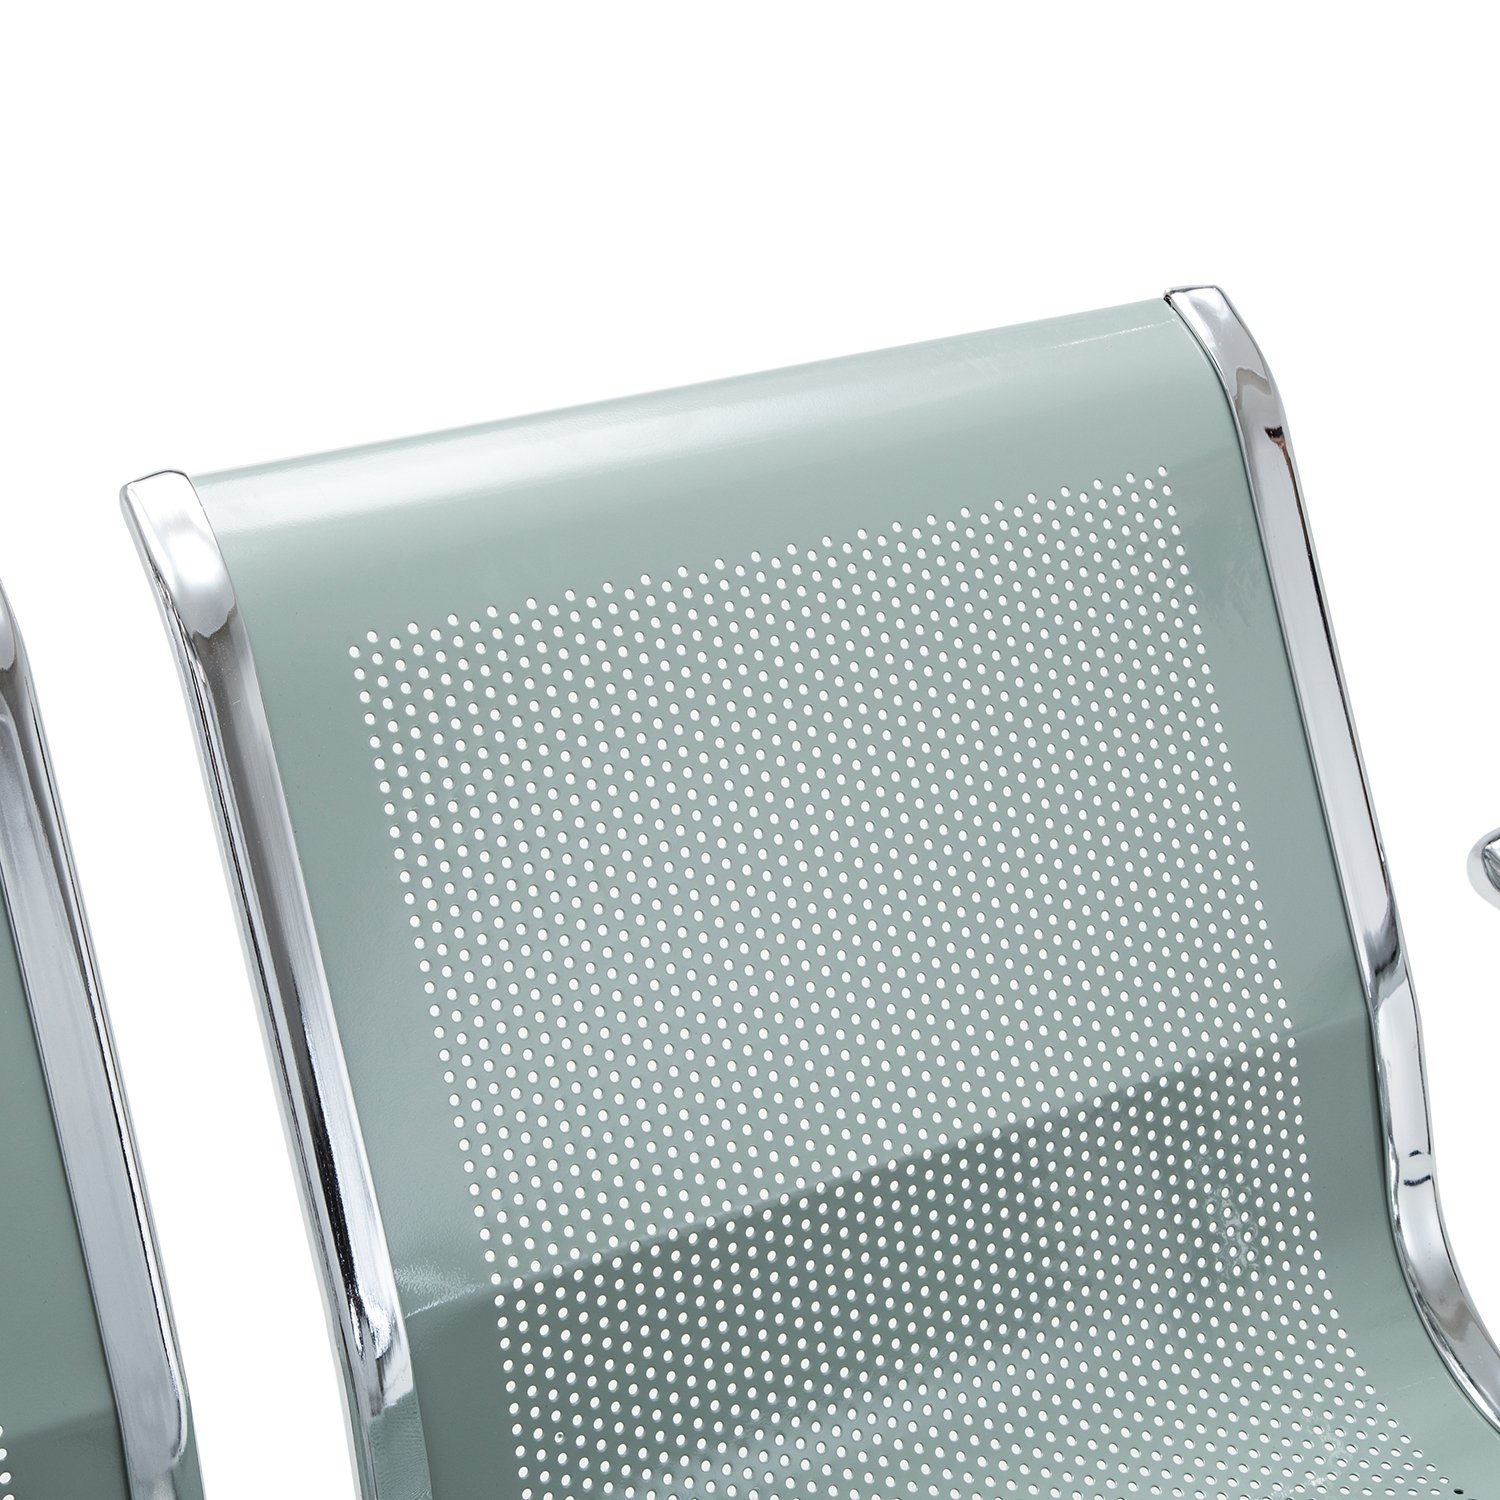 Office Chair Guest Heavy Duty Waiting Room Chairs with Arms Salon Barber Bank Hall Room Conference Airport 3 Seats Furniture Sliverylake Reception Chair Benches